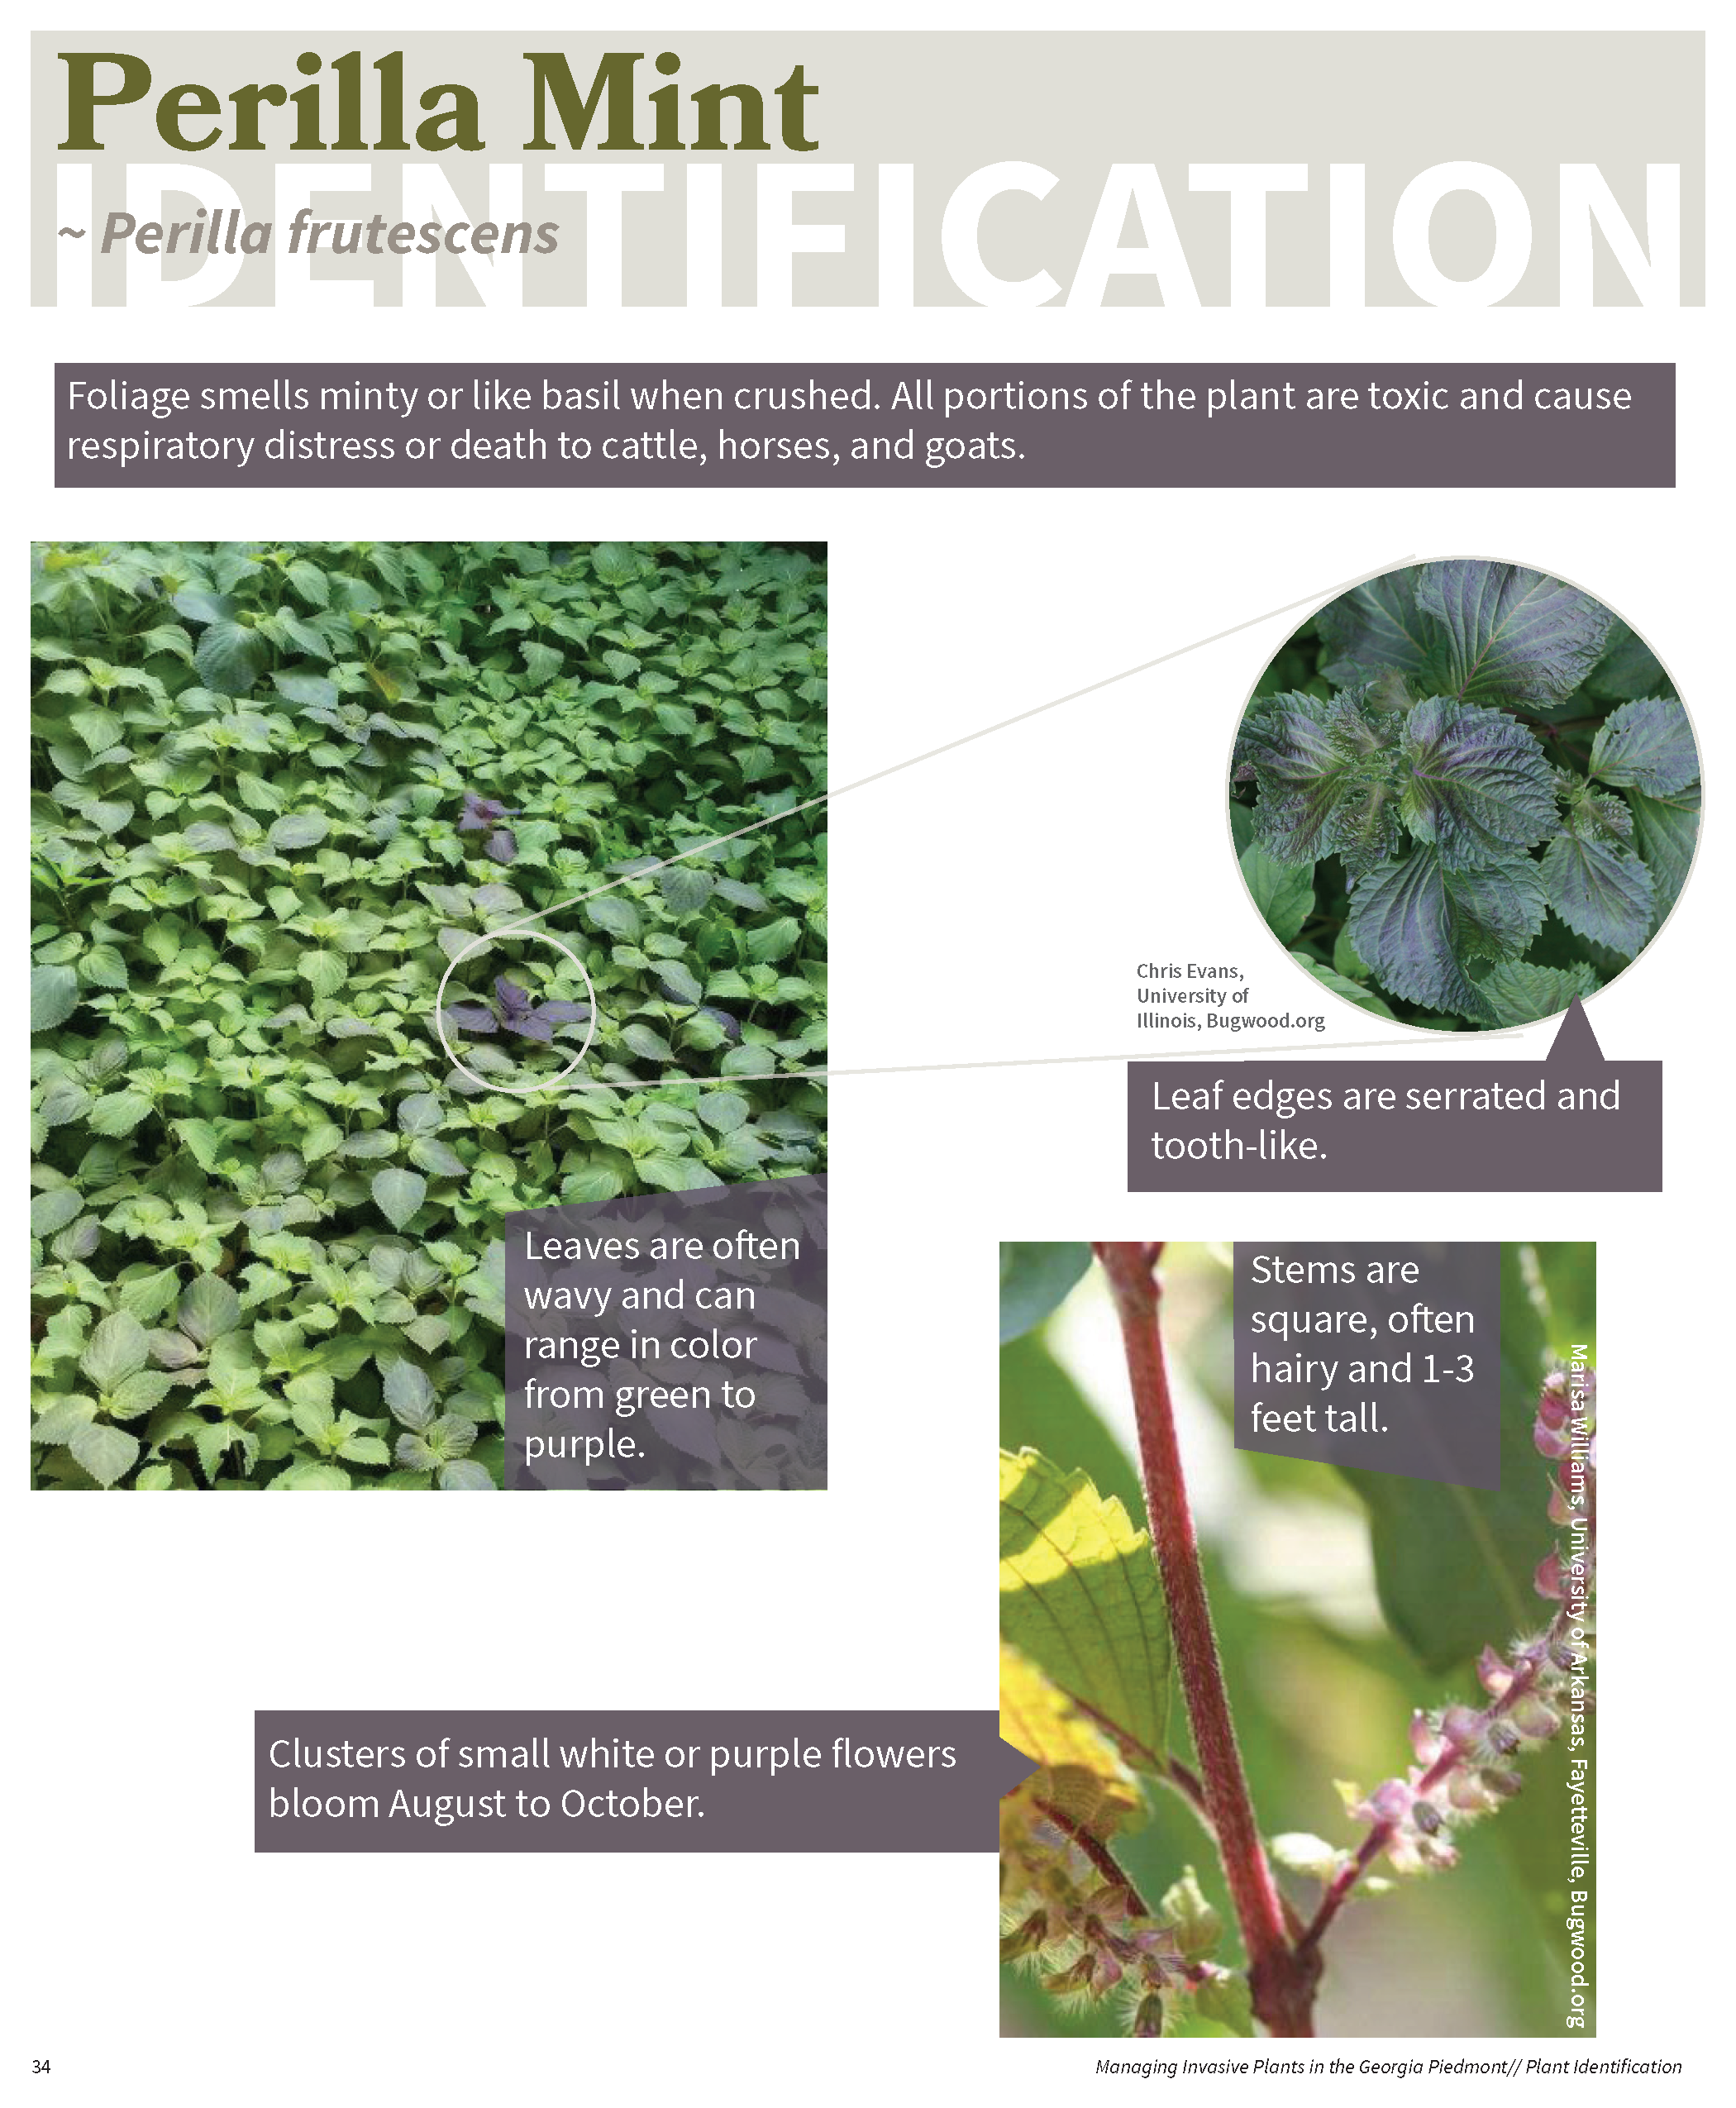 Managing Invasive Plants in the GA Piedmont for web_Page_33